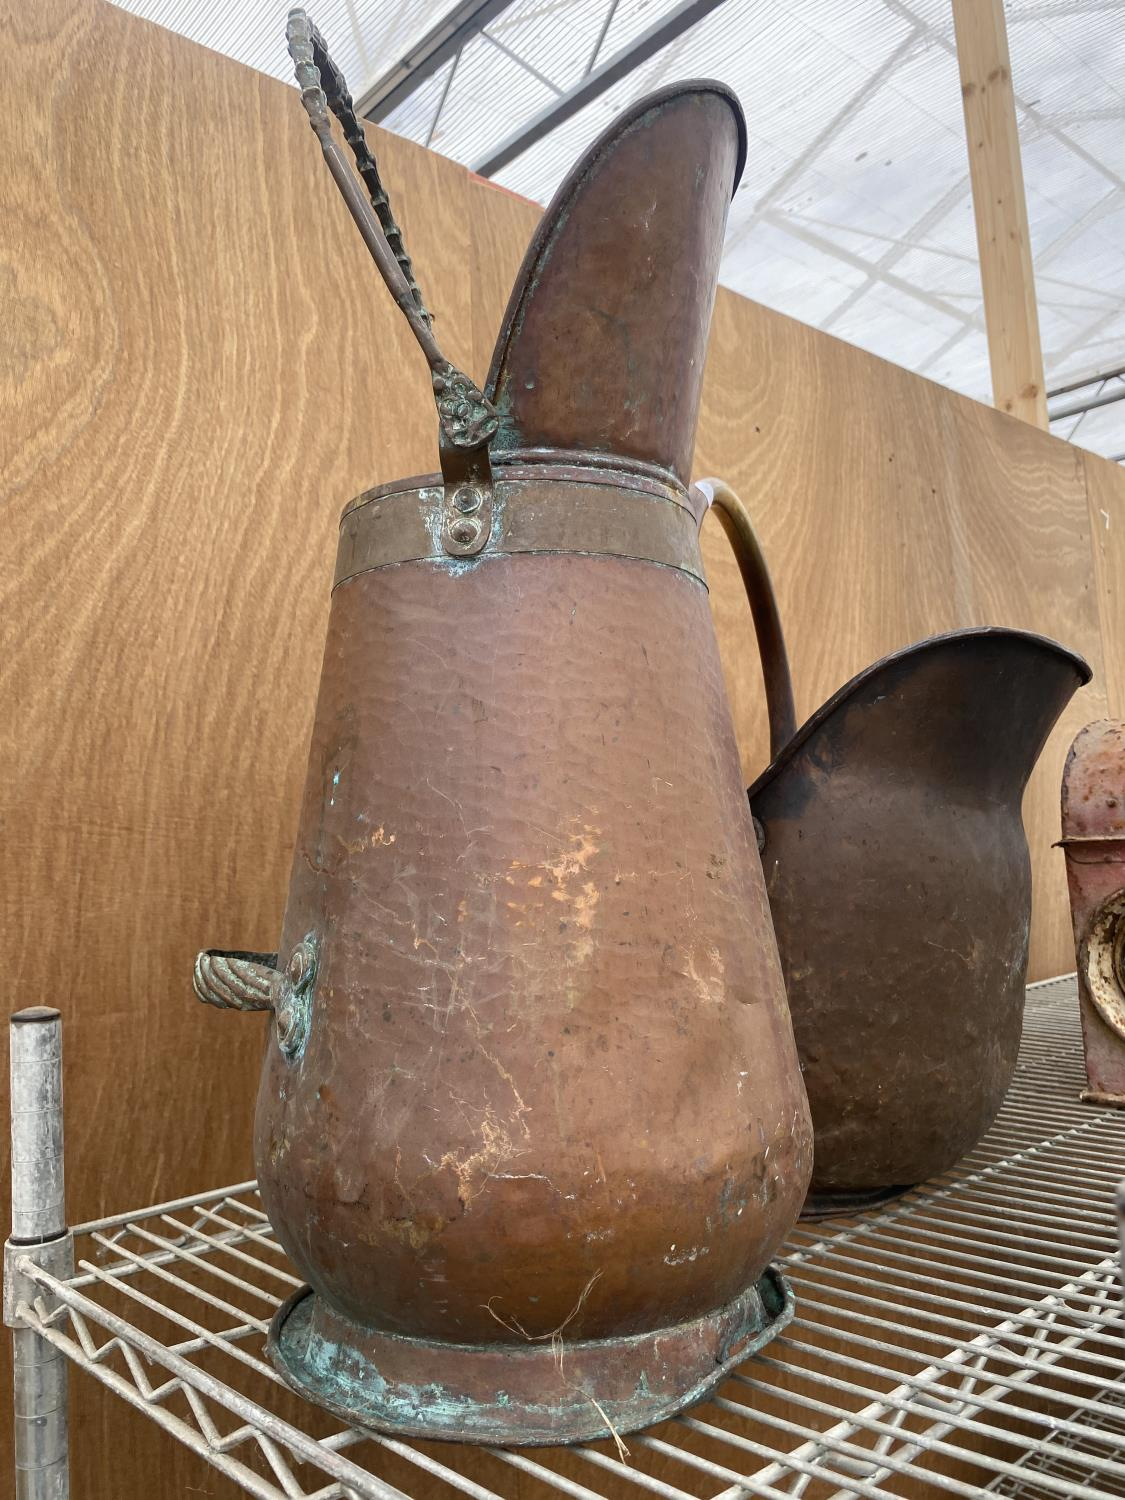 A GROUP OF THREE COPPER ITEMS TO INCLUDE A KETTLE, A COAL BUCKET AND A COAL SKUTTLE - Image 4 of 5